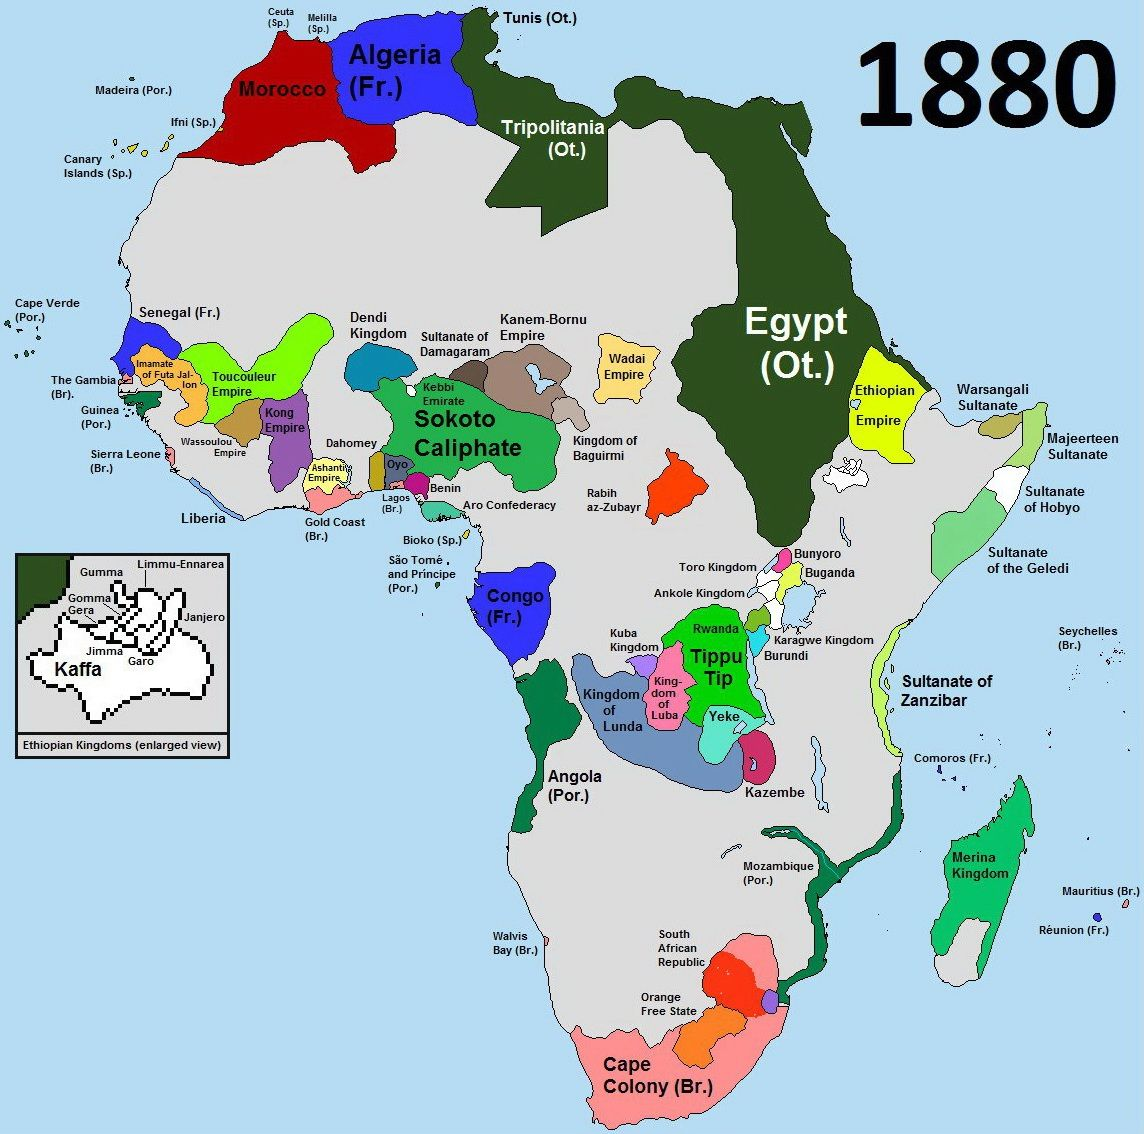 Africa before partition (1880) | Maps | Map, Africa map, World history